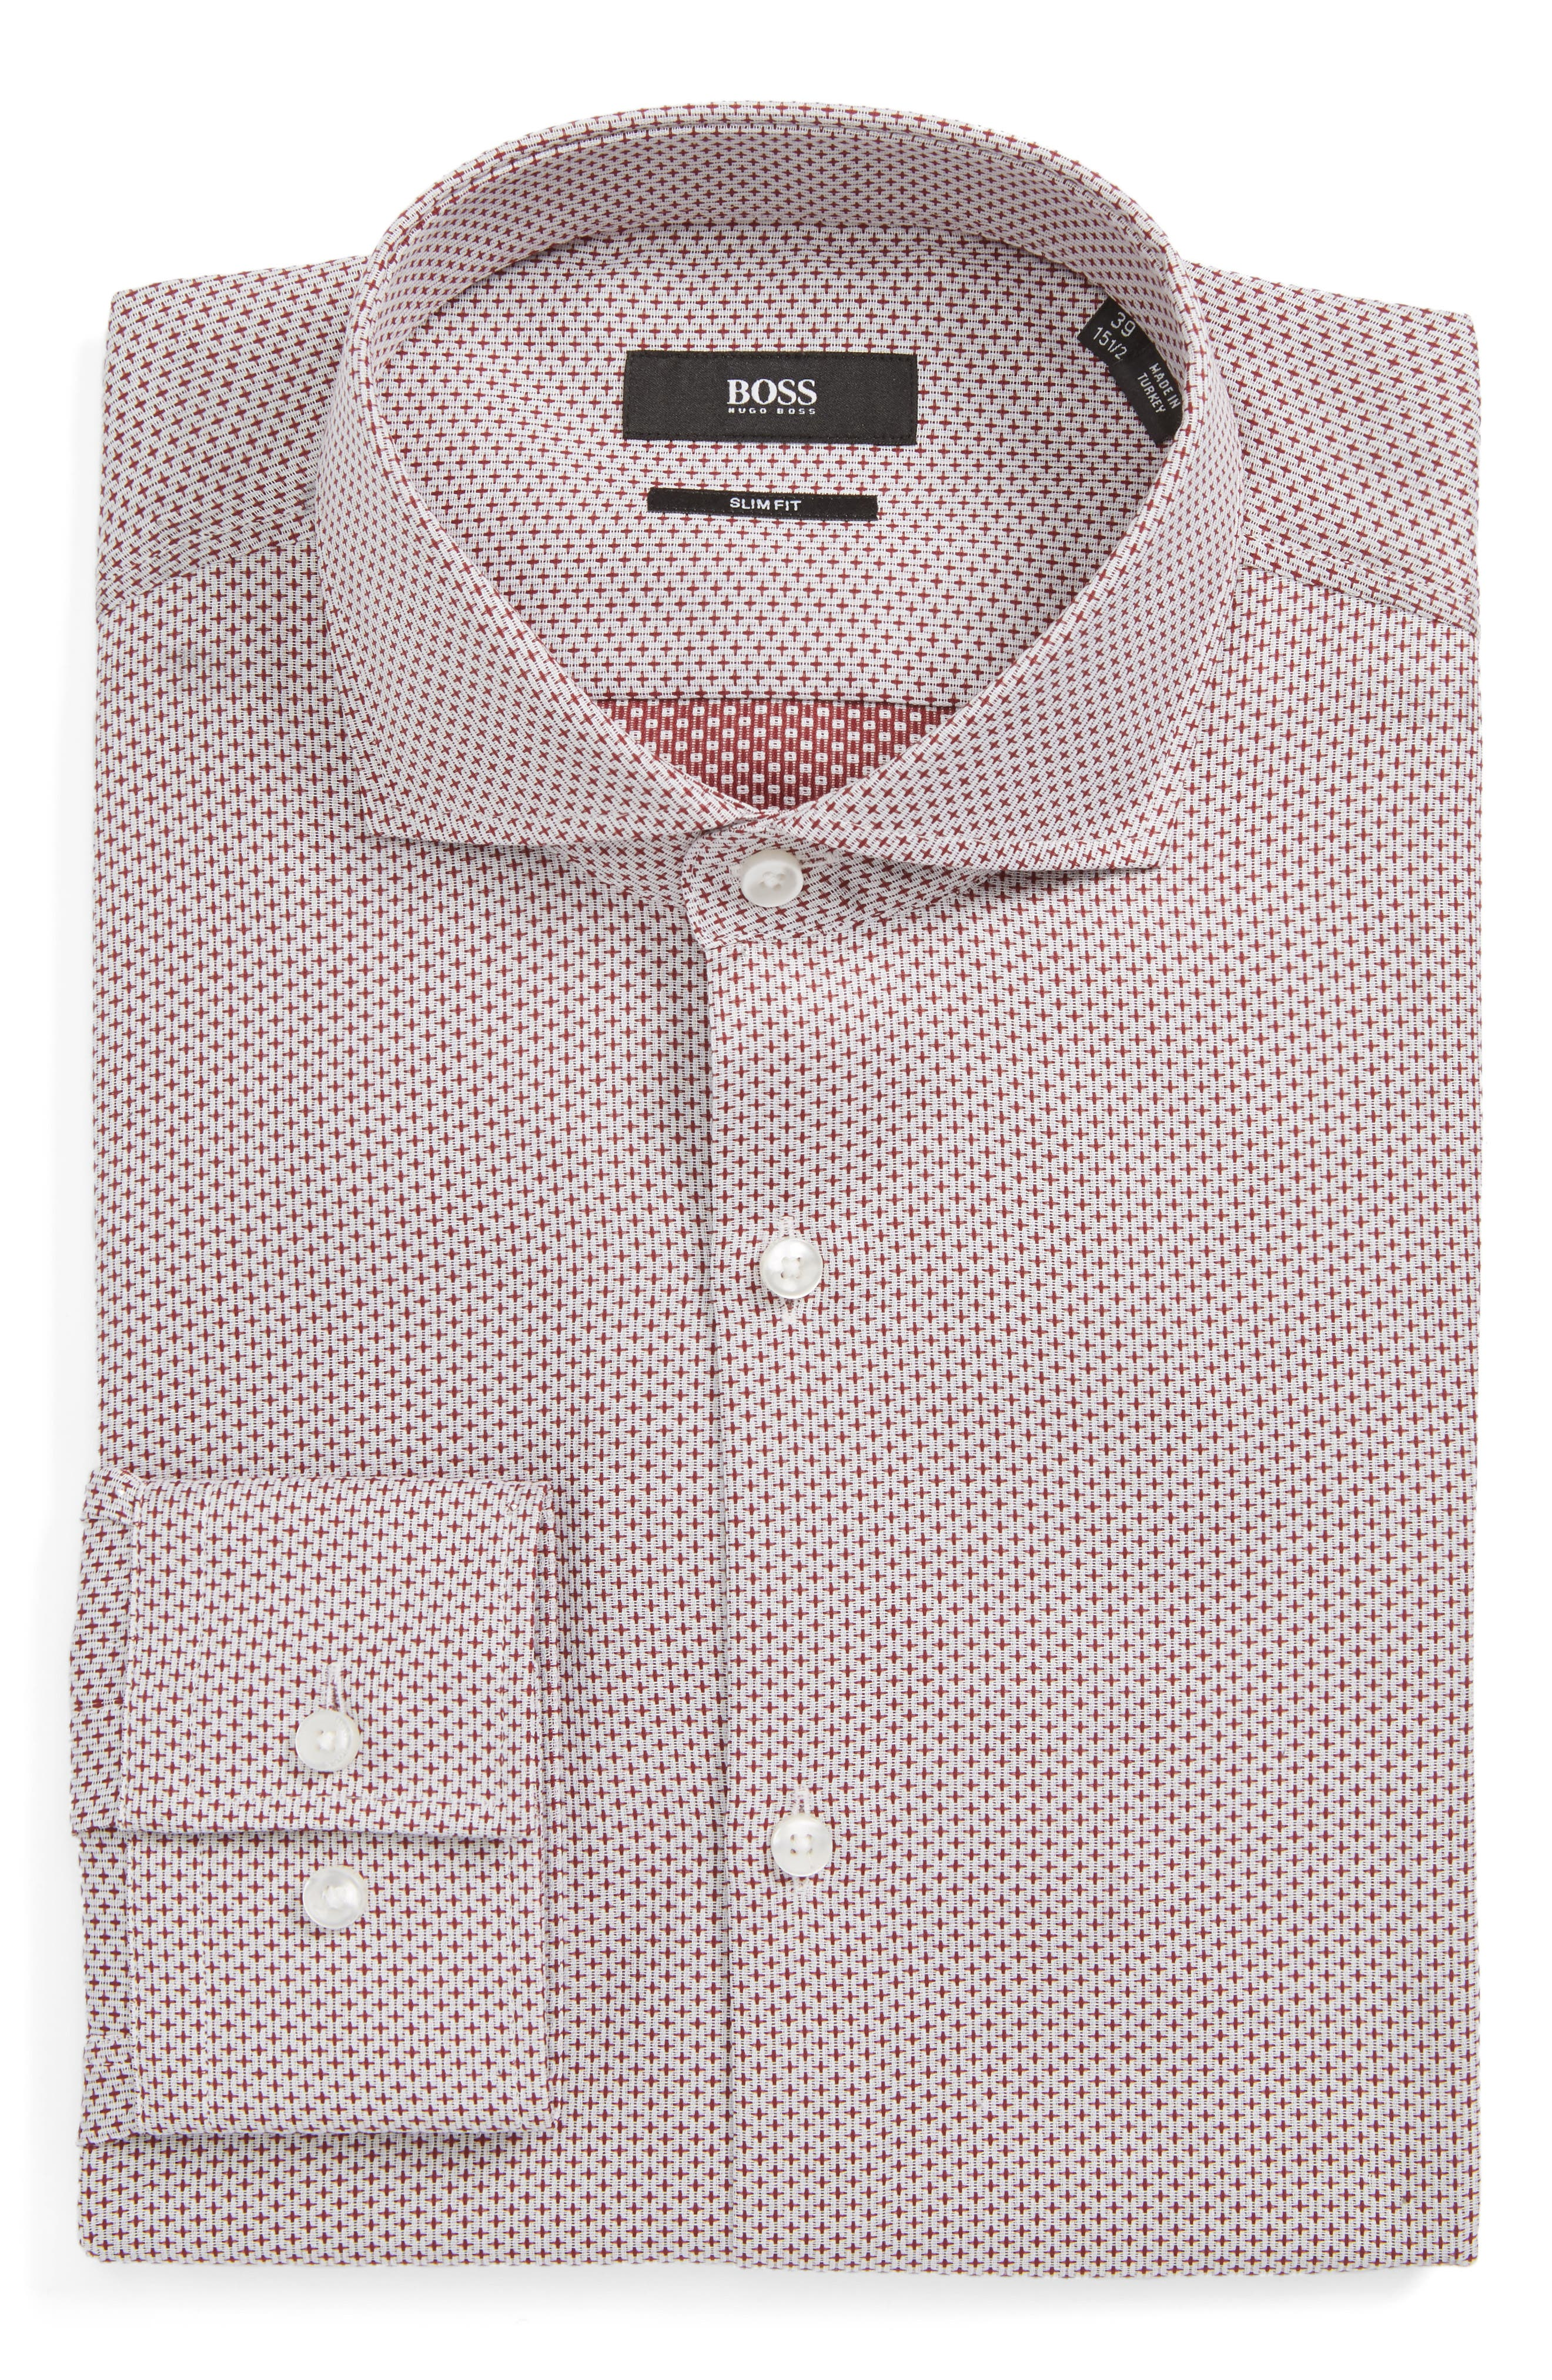 Jason Slim Fit Dress Shirt,                         Main,                         color, 930